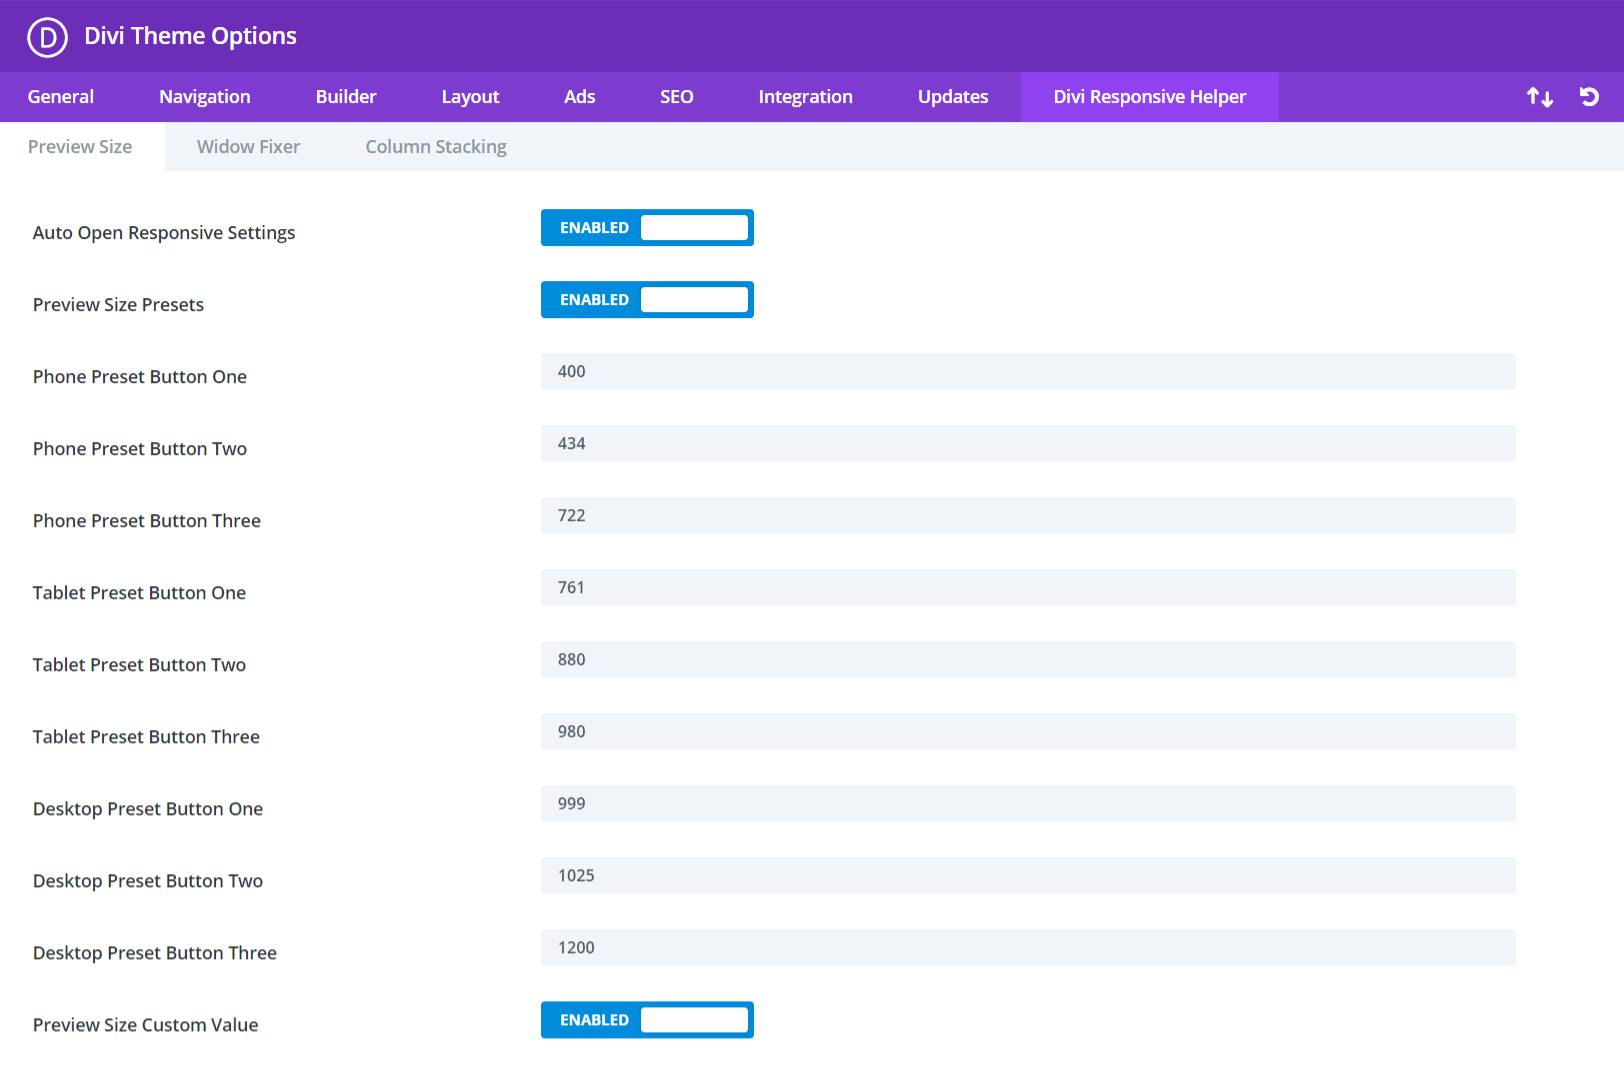 Divi Responsive Helper Preview Size Settings and Features